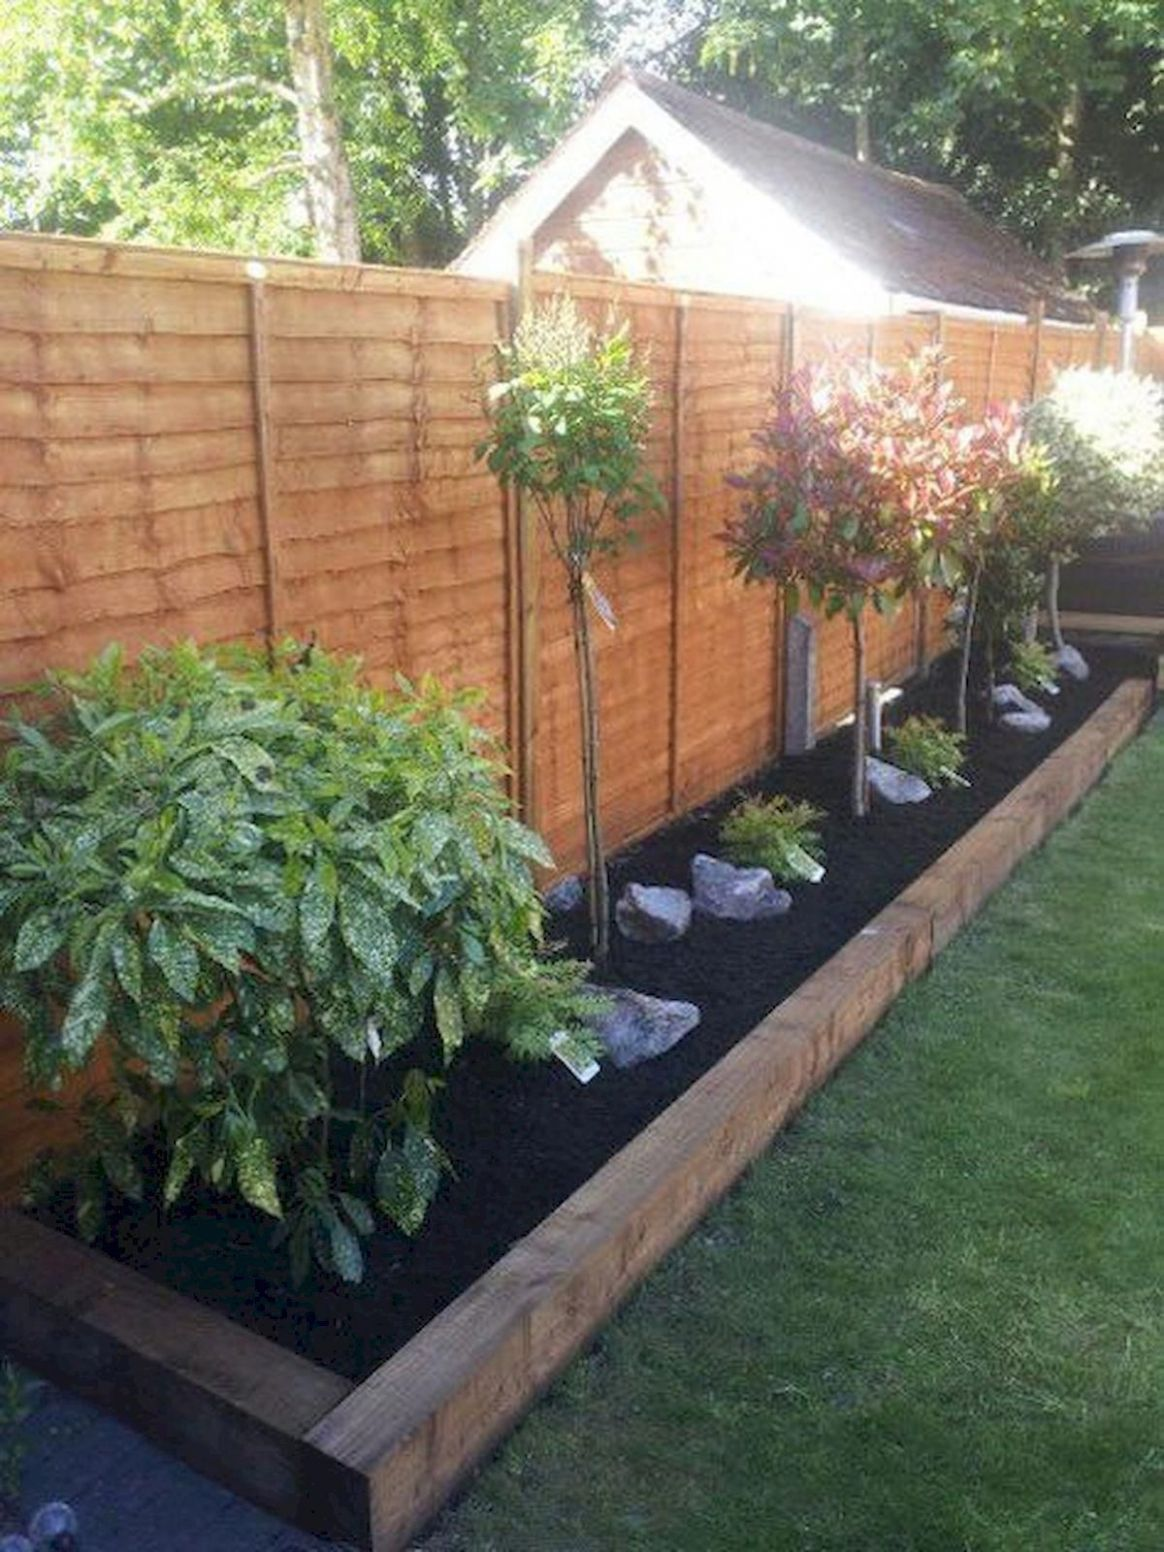 Landscaping For Your Location - How To Choose The Right Plants ...